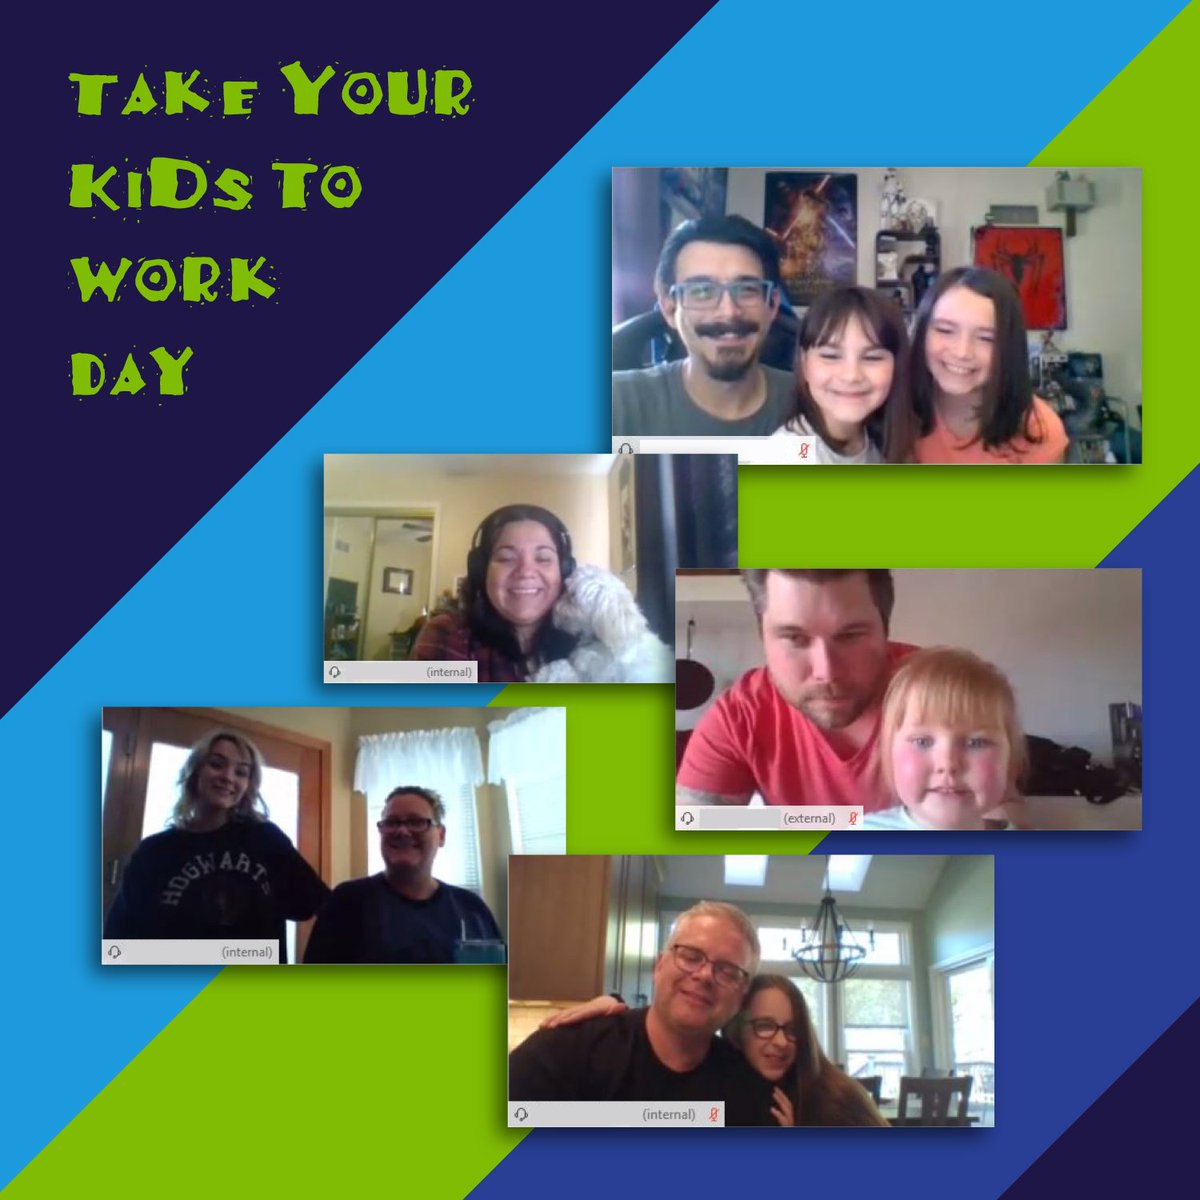 One thing these last few months has taught us is that every day can be #TakeYourKidtoWorkDay! Our children and our pets have become our coworkers (whether they like it or not). At ATG @Cognizant, our associates took some time to introduce us to their helpers. #ATG #Cognizant https://t.co/hgMWET44Kd